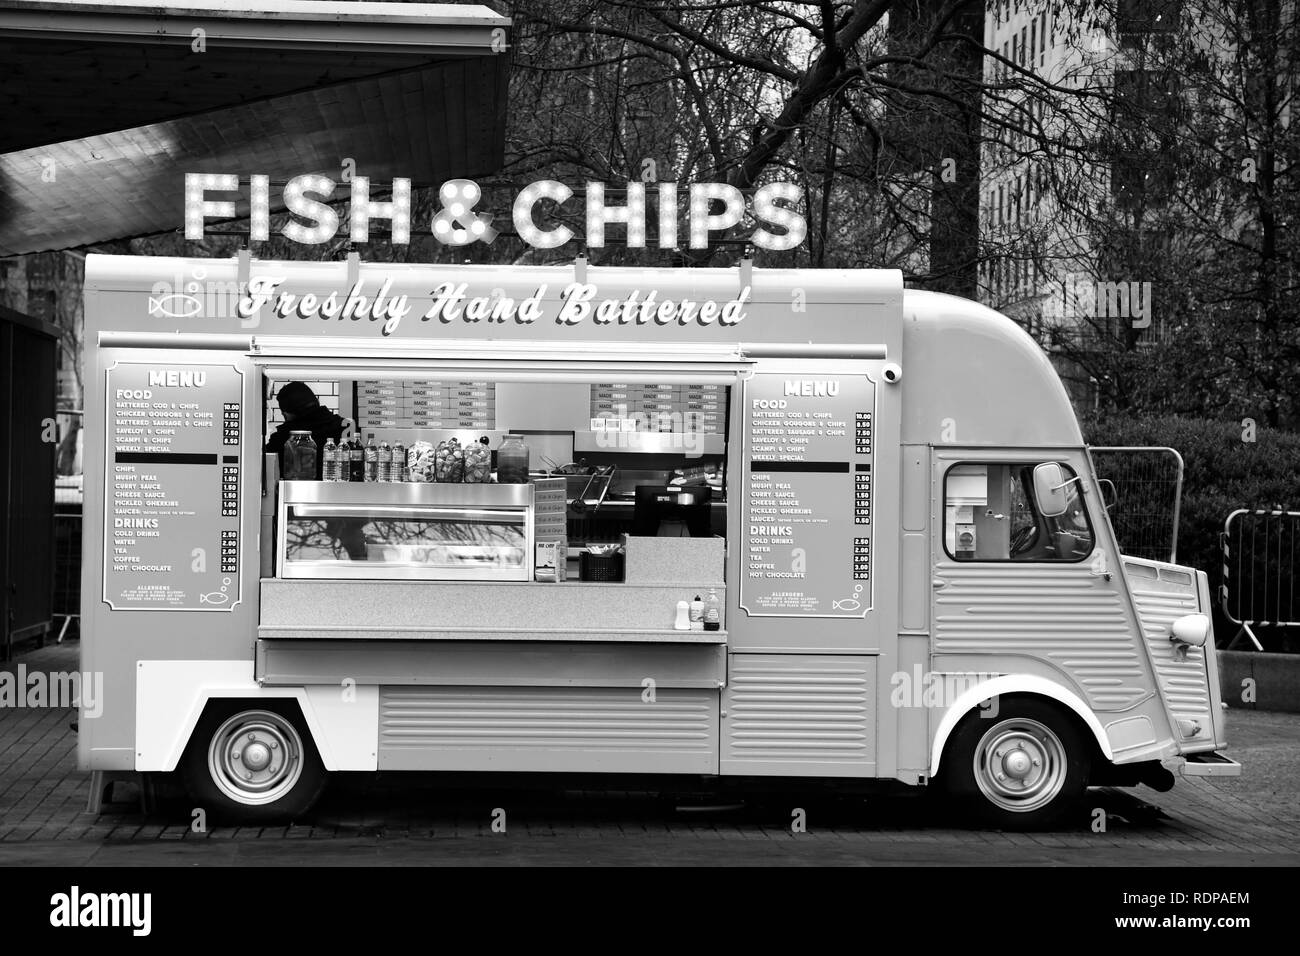 Fish and Chips food truck on the Southbank of the Thames in London, England - Stock Image